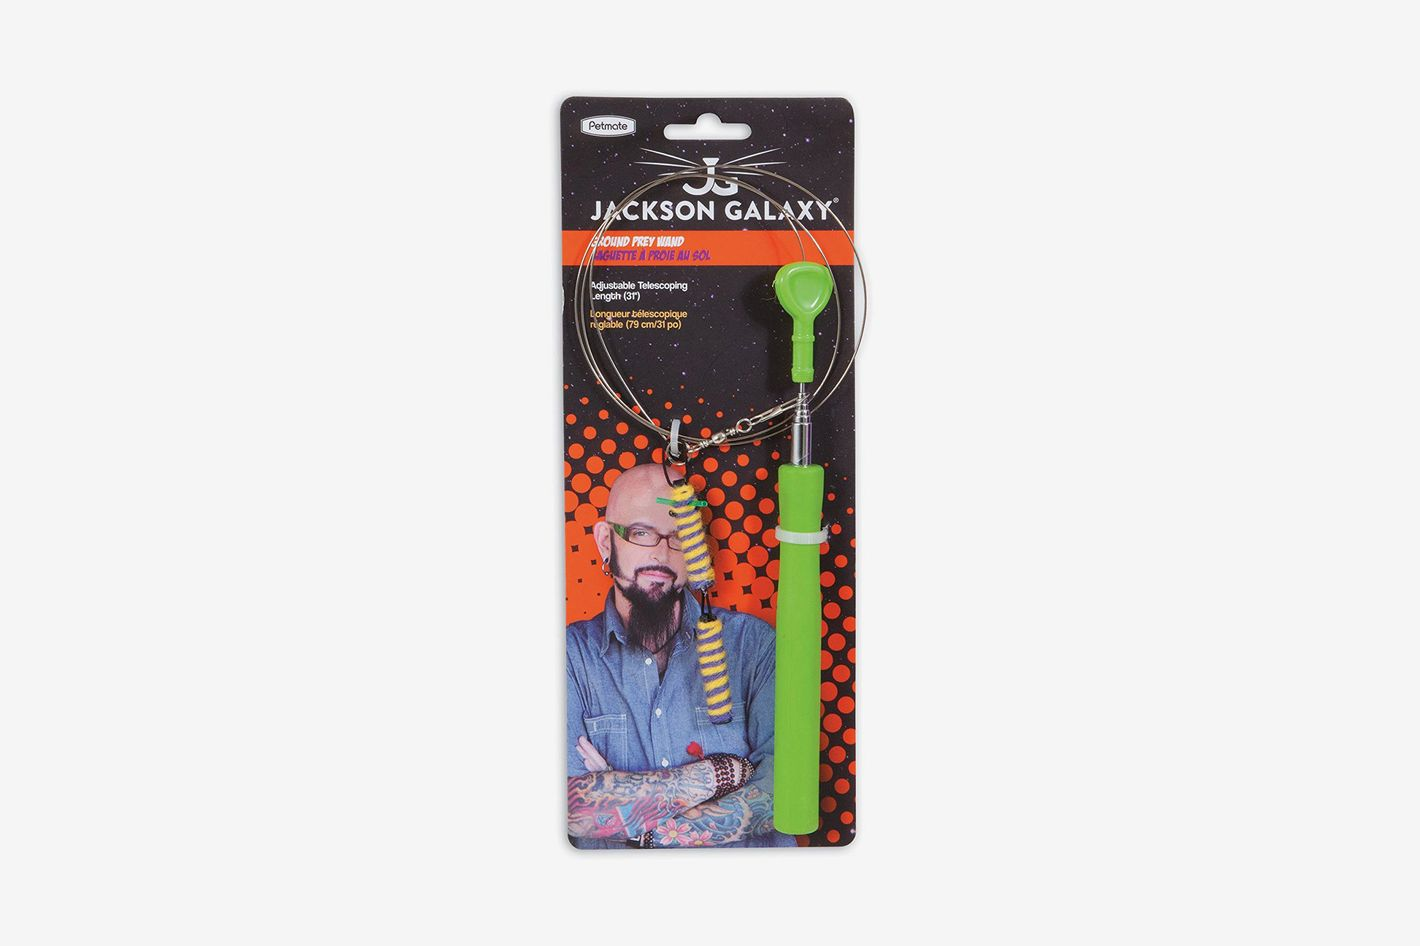 Jackson Galaxy Ground Prey Wand Teaser